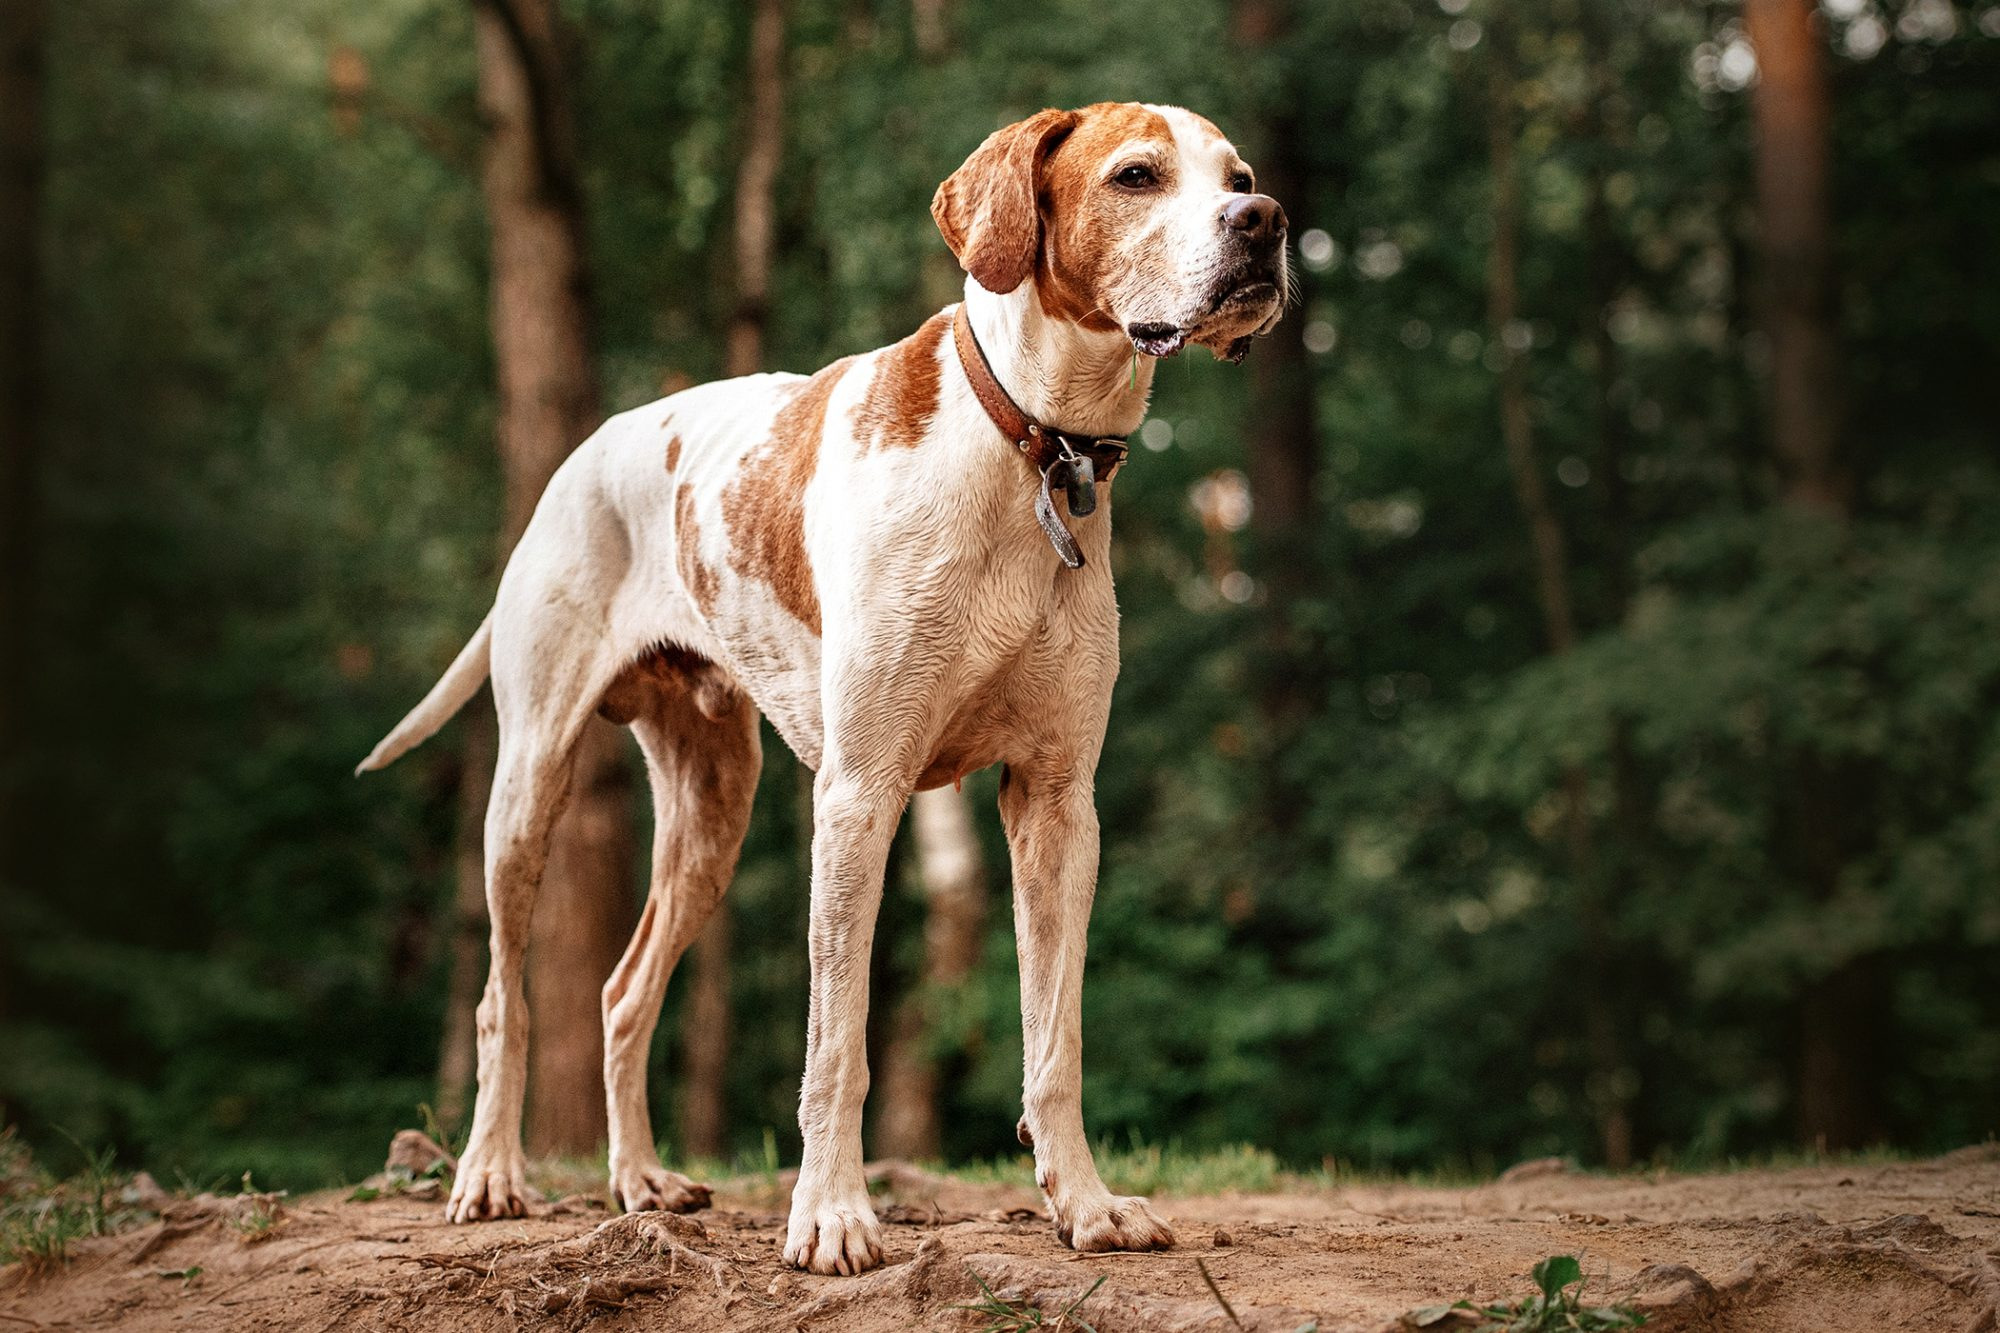 Senior English Pointer standing in forest